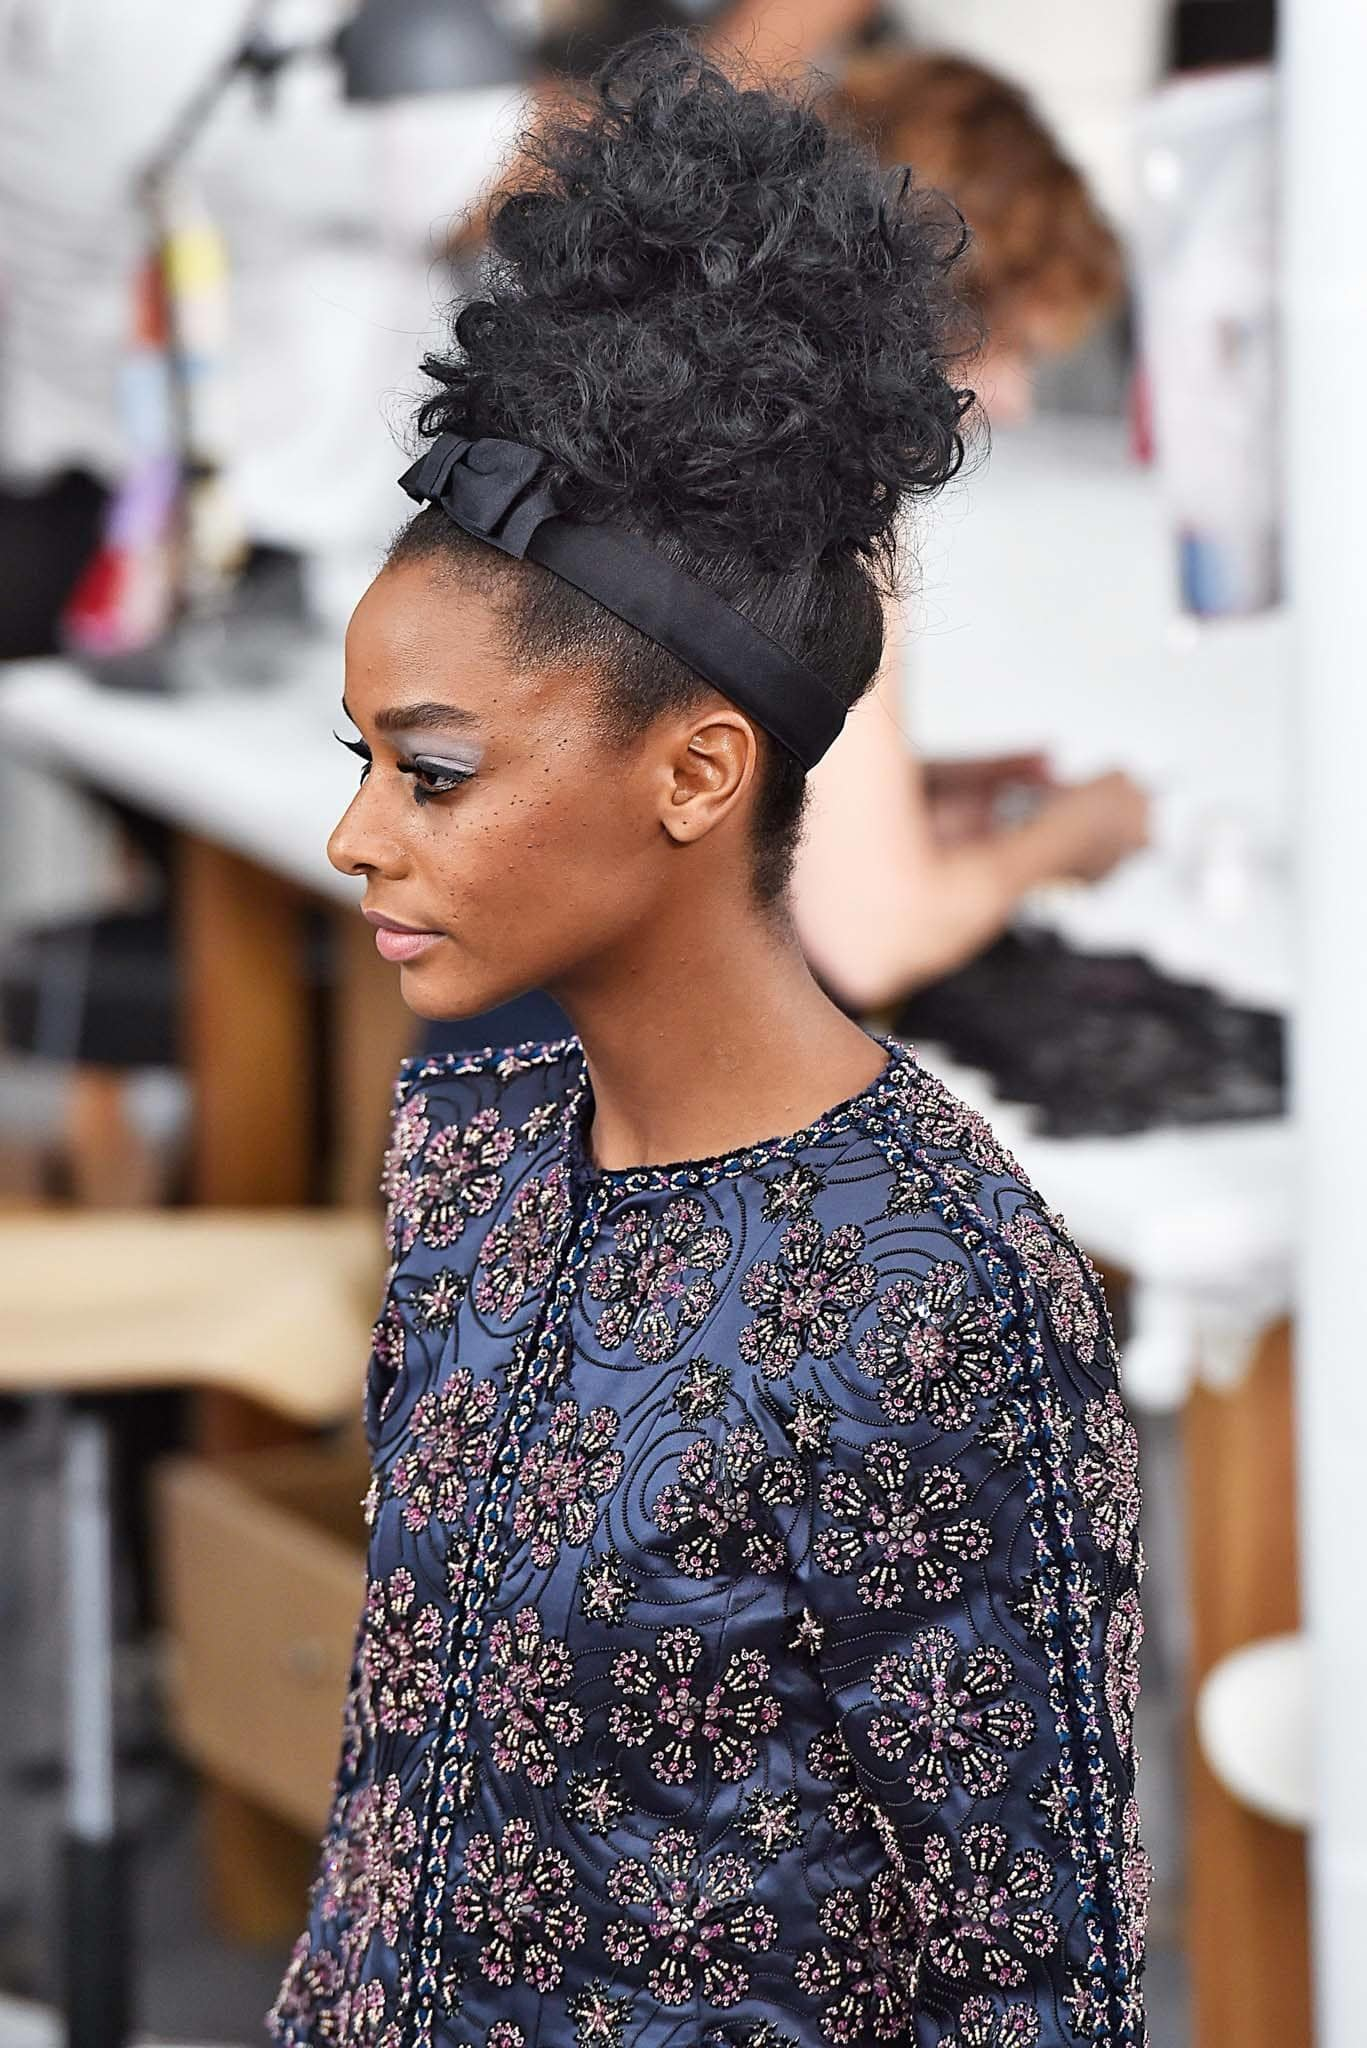 Easy African American Prom Hairstyles - Top Hair Ideas 2018 4